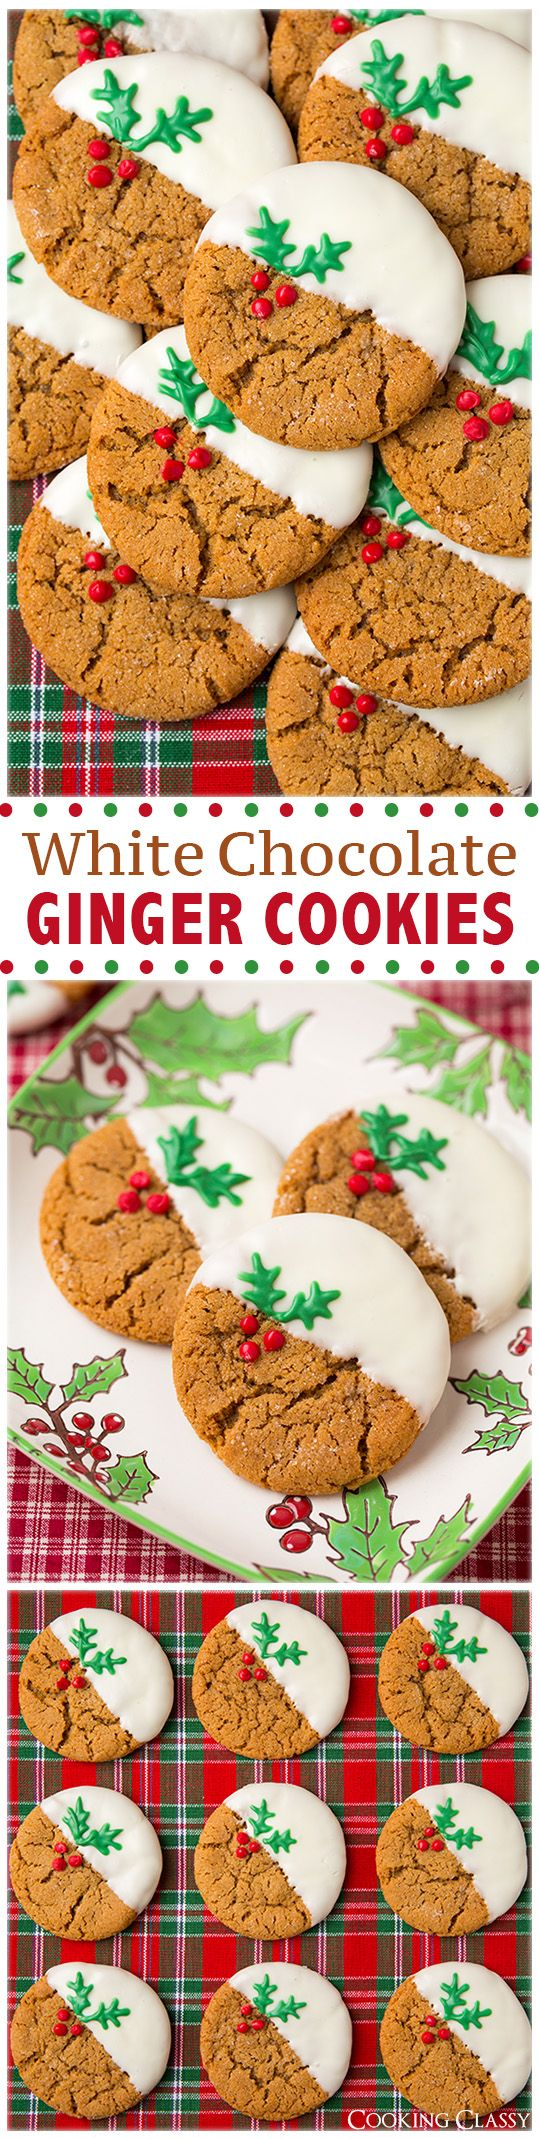 White Chocolate Dipped Ginger Cookies Xmaspin